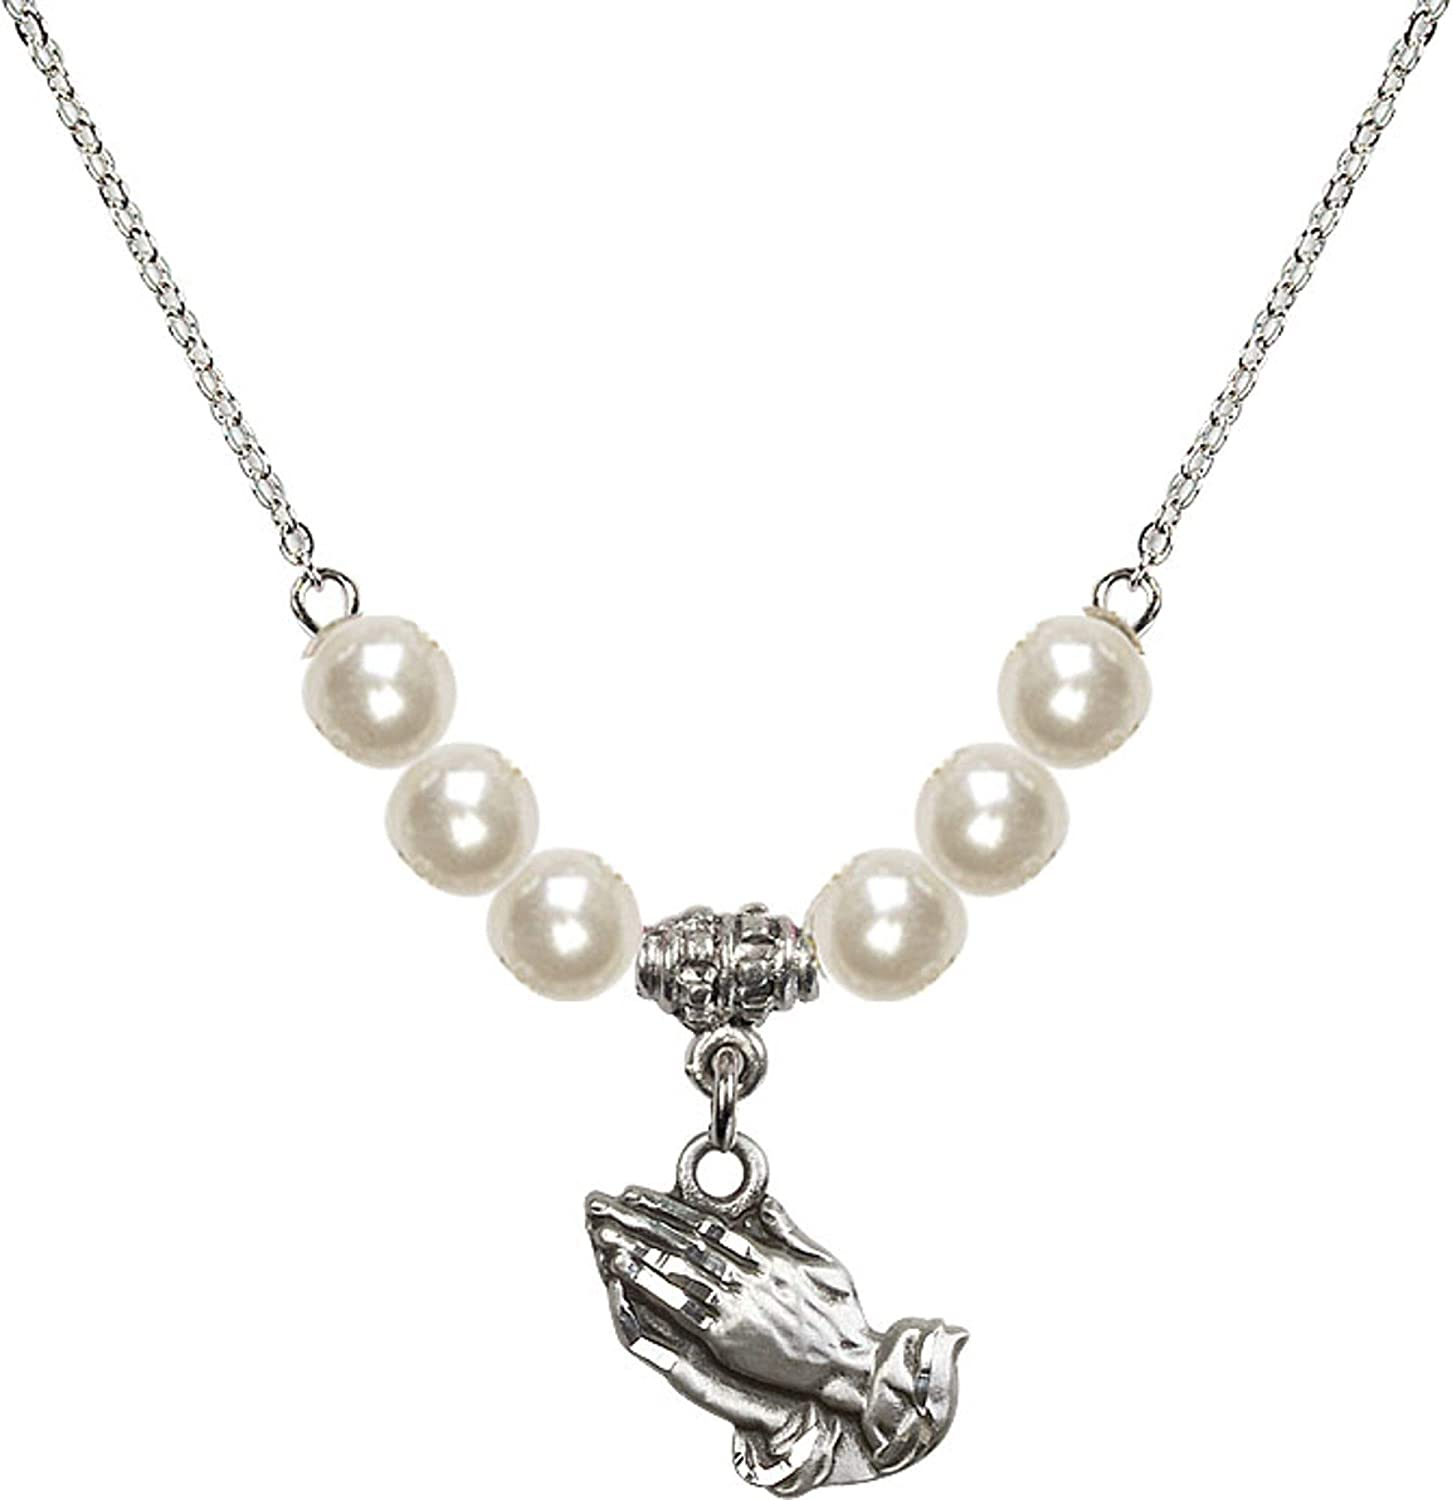 Bonyak Jewelry 18 Inch Rhodium Plated Necklace w// 6mm Faux-Pearl Beads and Praying Hands Charm